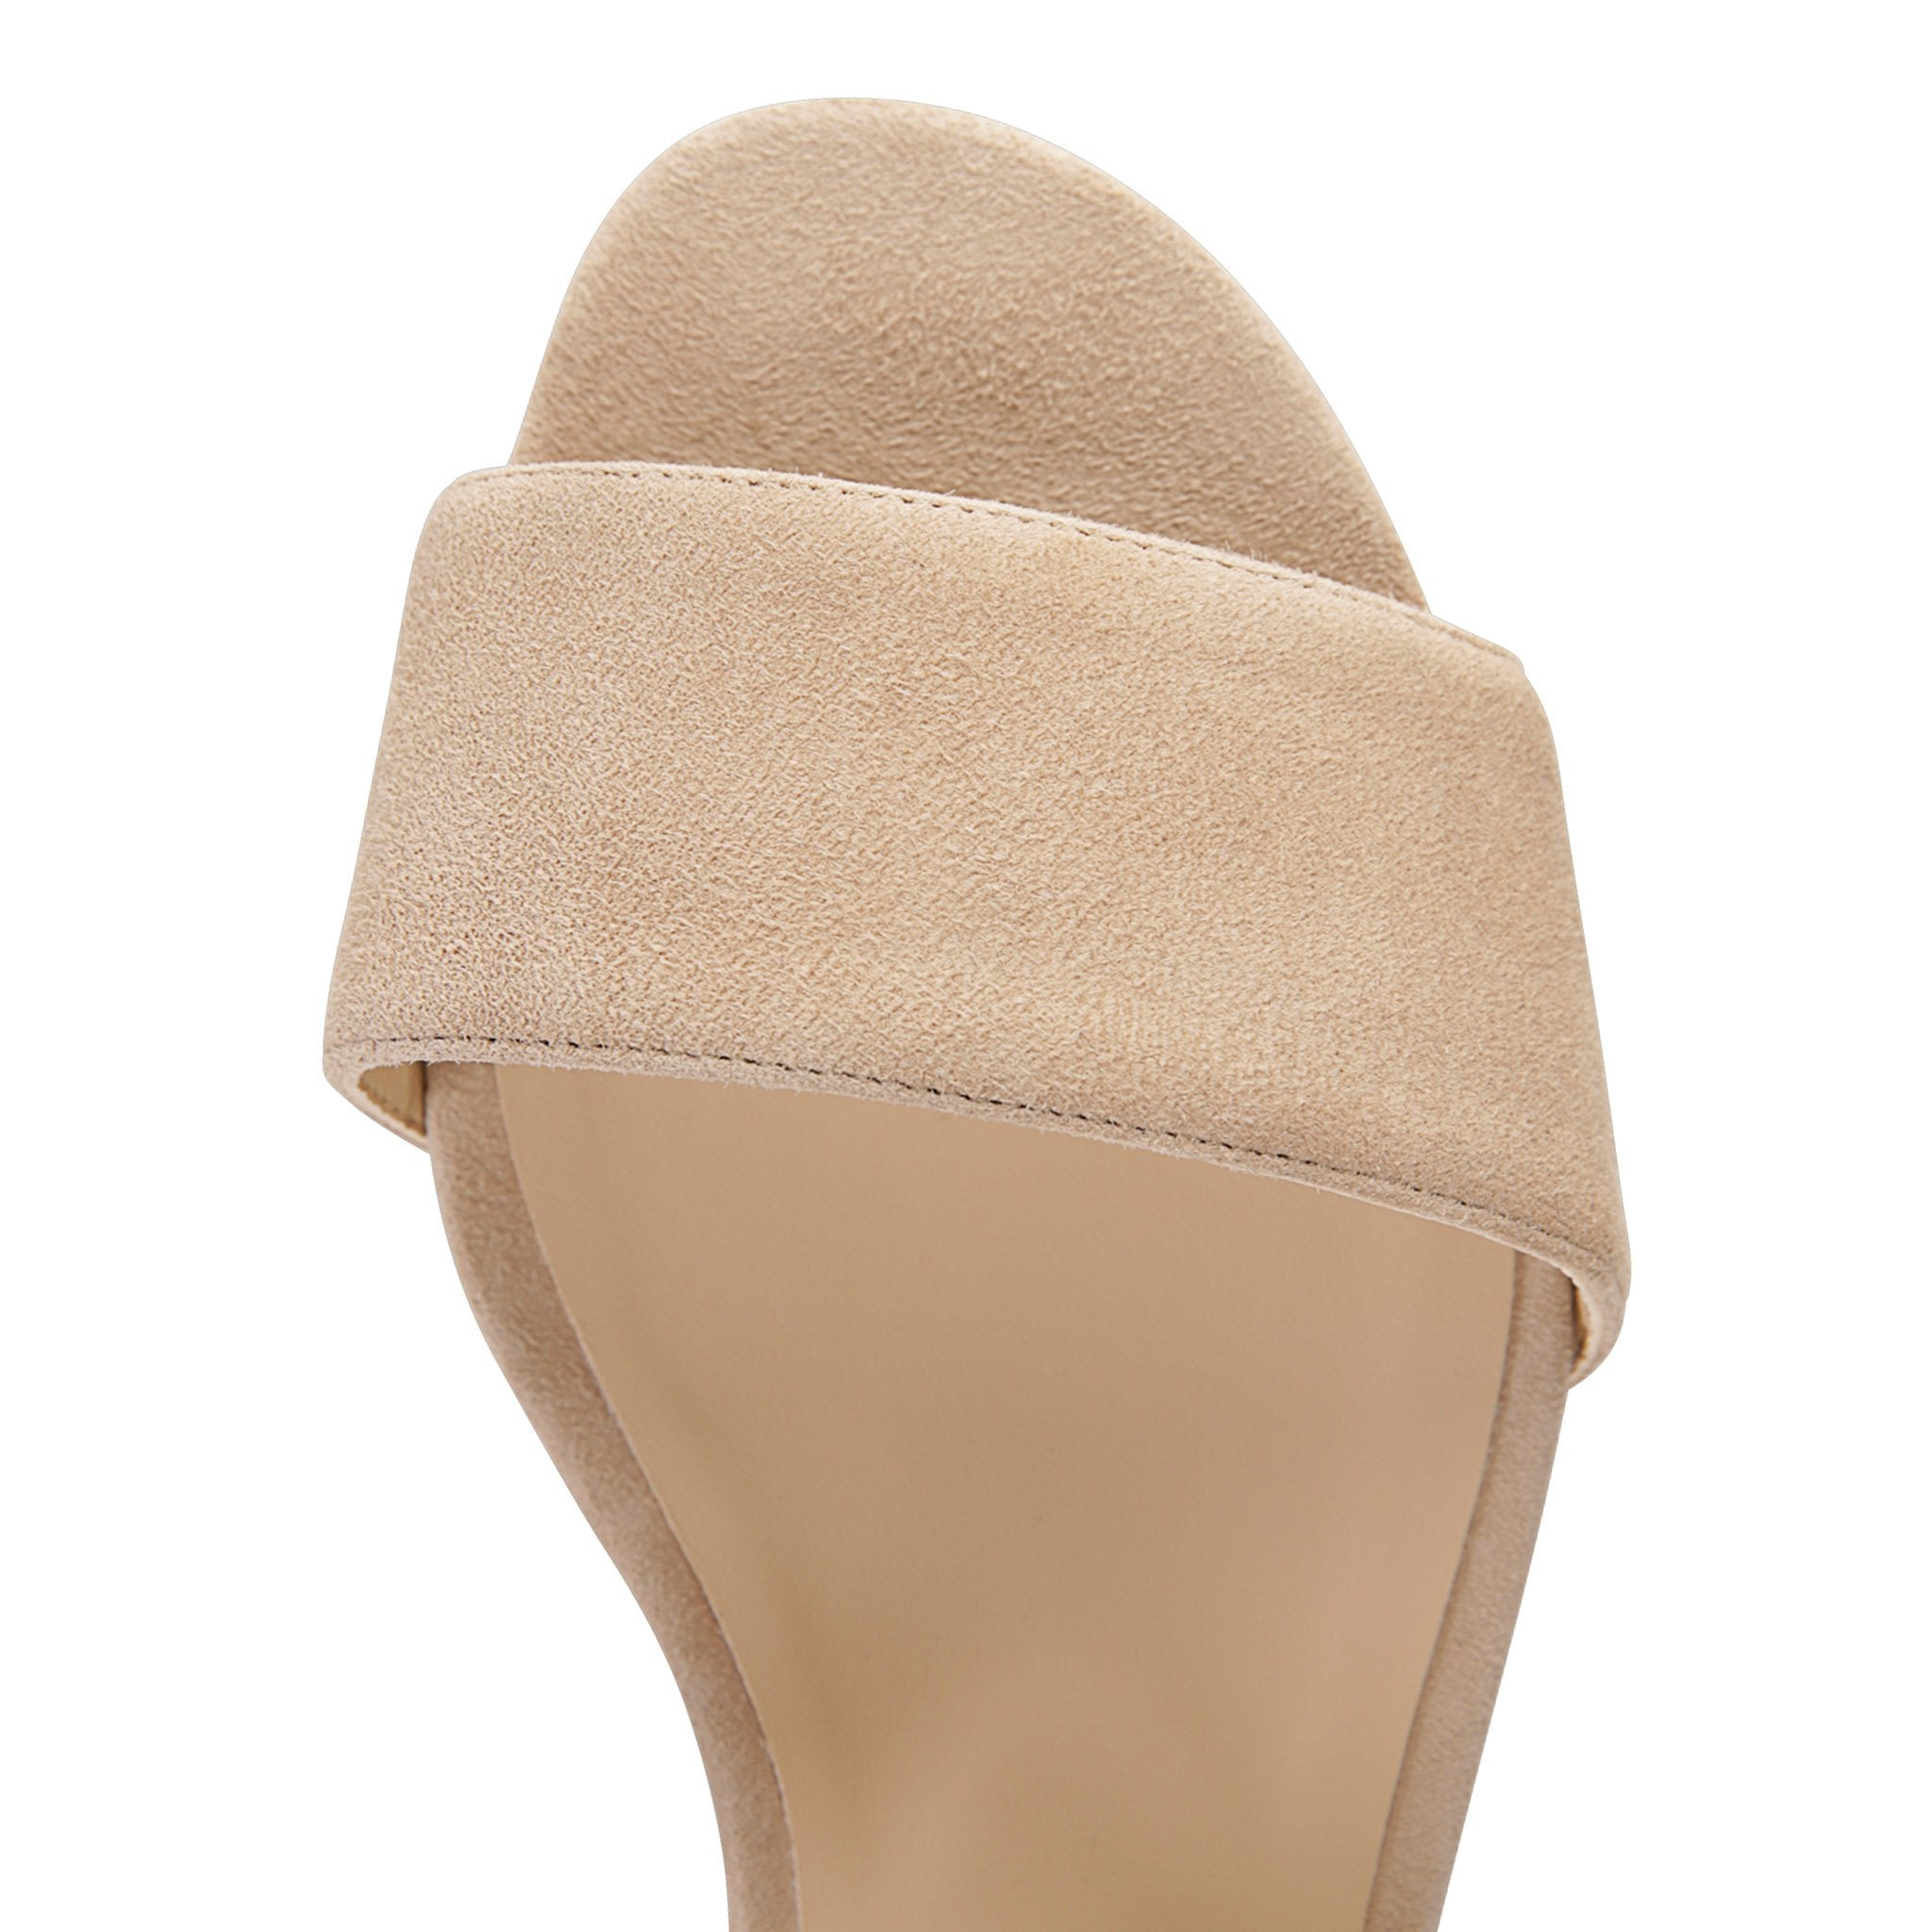 LUCCA - Velukid Tan, VIAJIYU - Women's Hand Made Sustainable Luxury Shoes. Made in Italy. Made to Order.